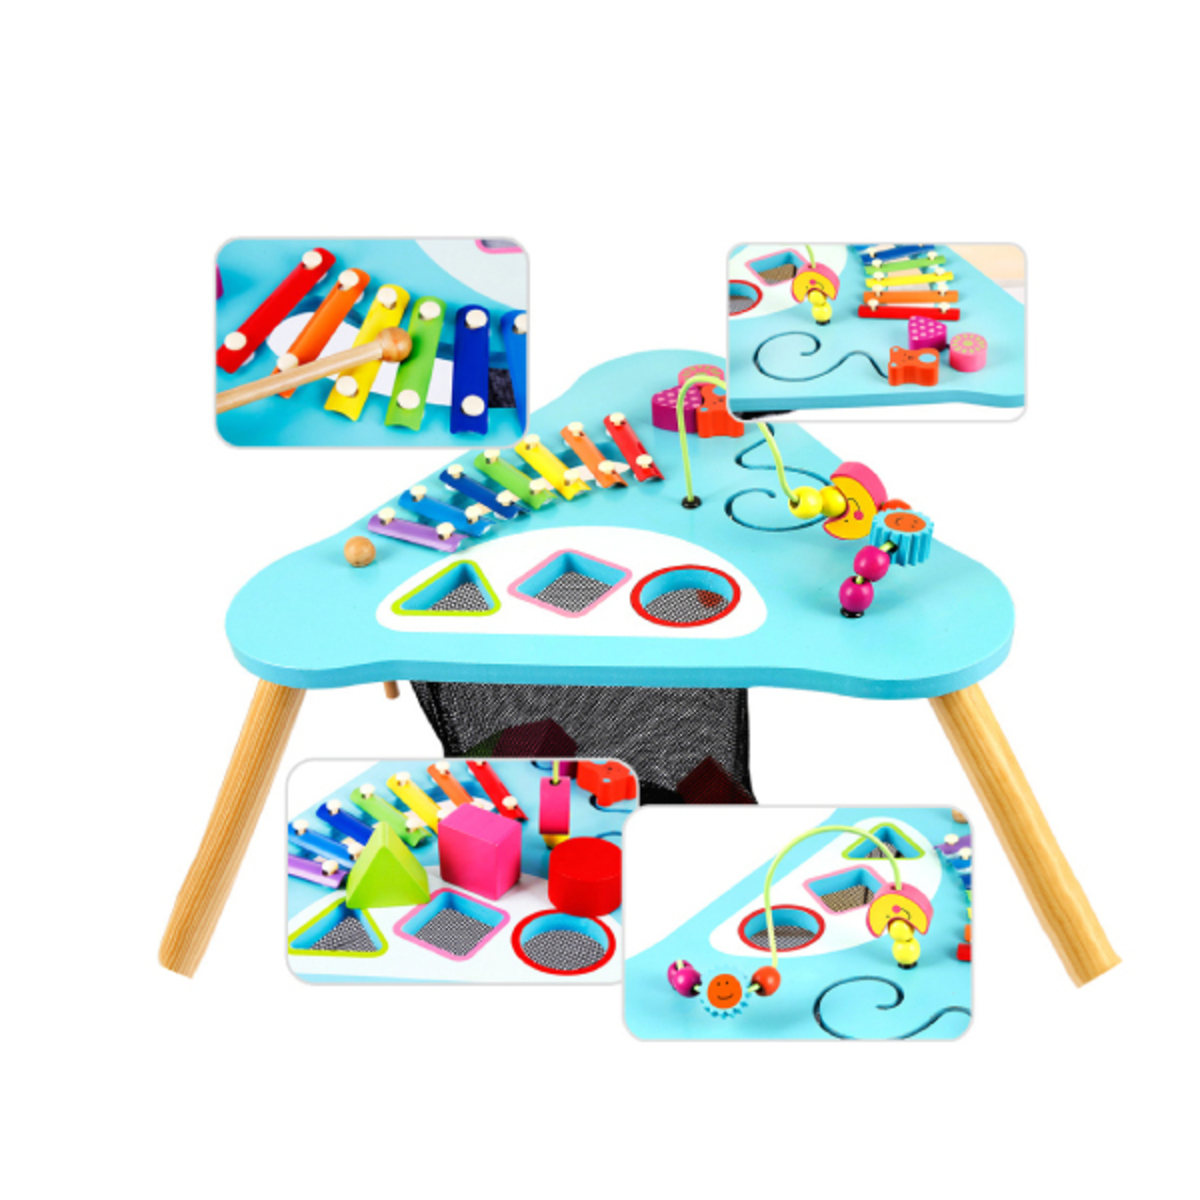 Children Kids Baby Colorful Wooden Activity Table